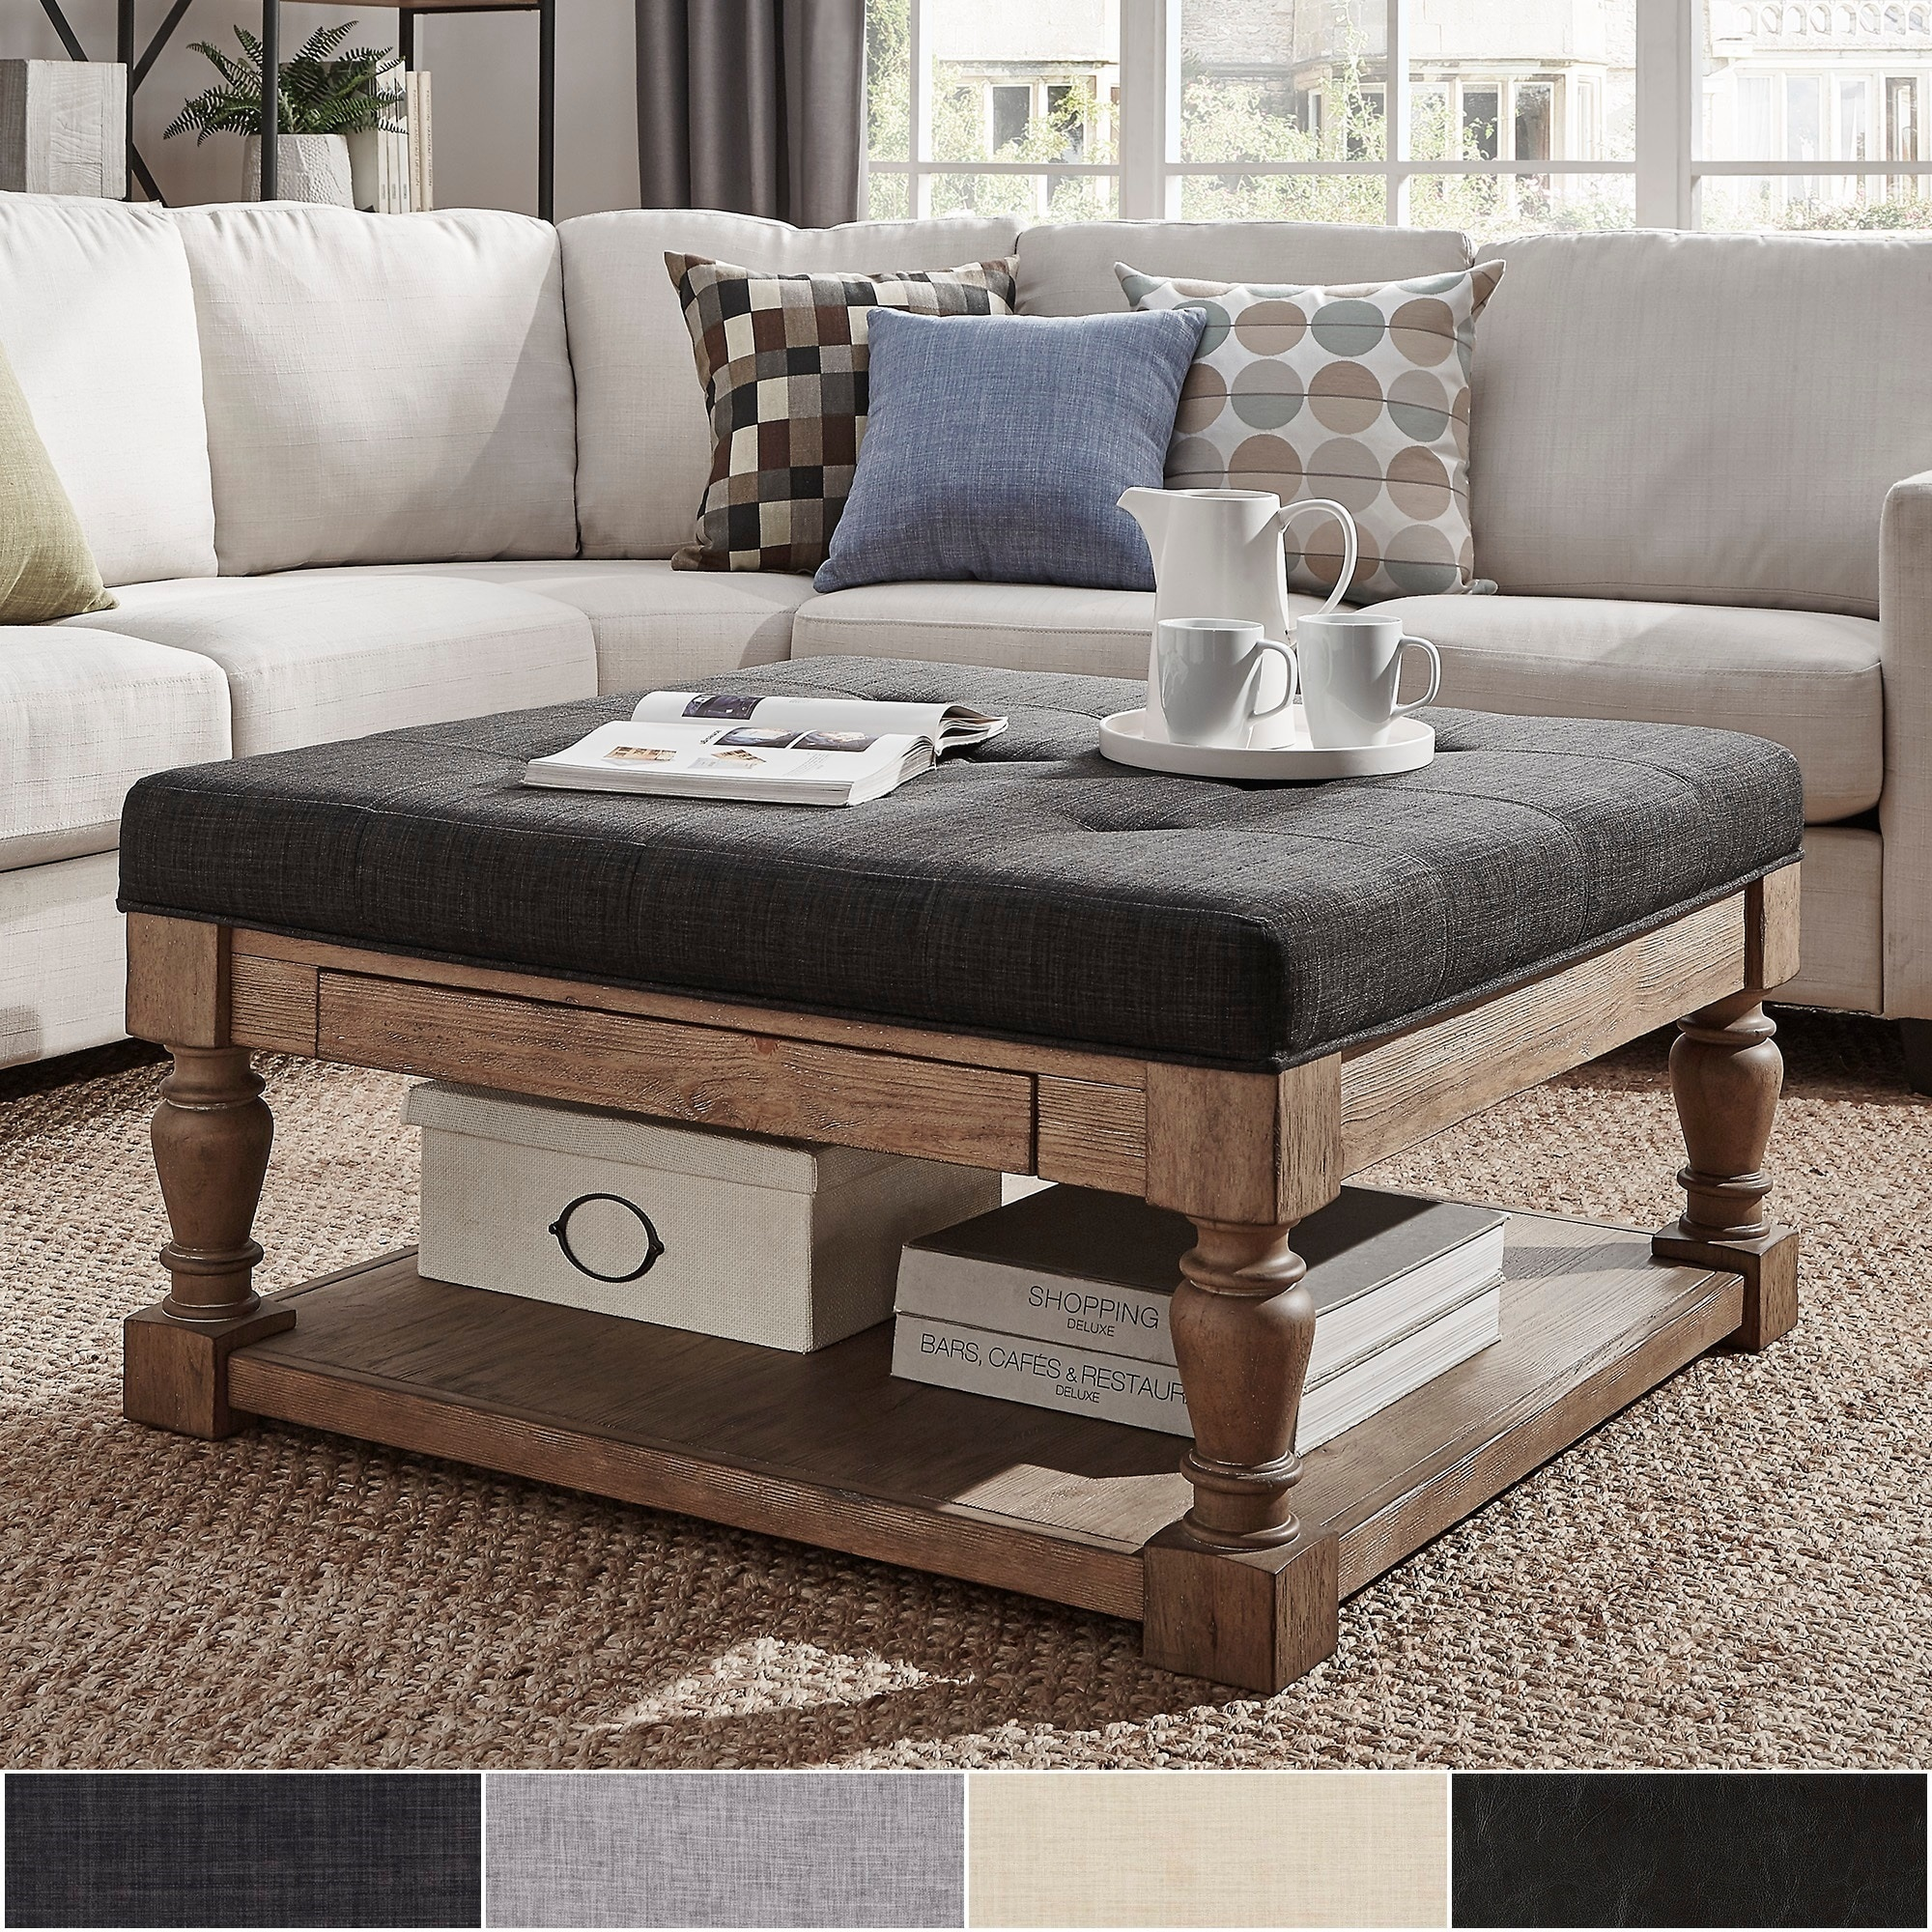 Buy Ottomans & Storage Ottomans Online at Overstock | Our ...